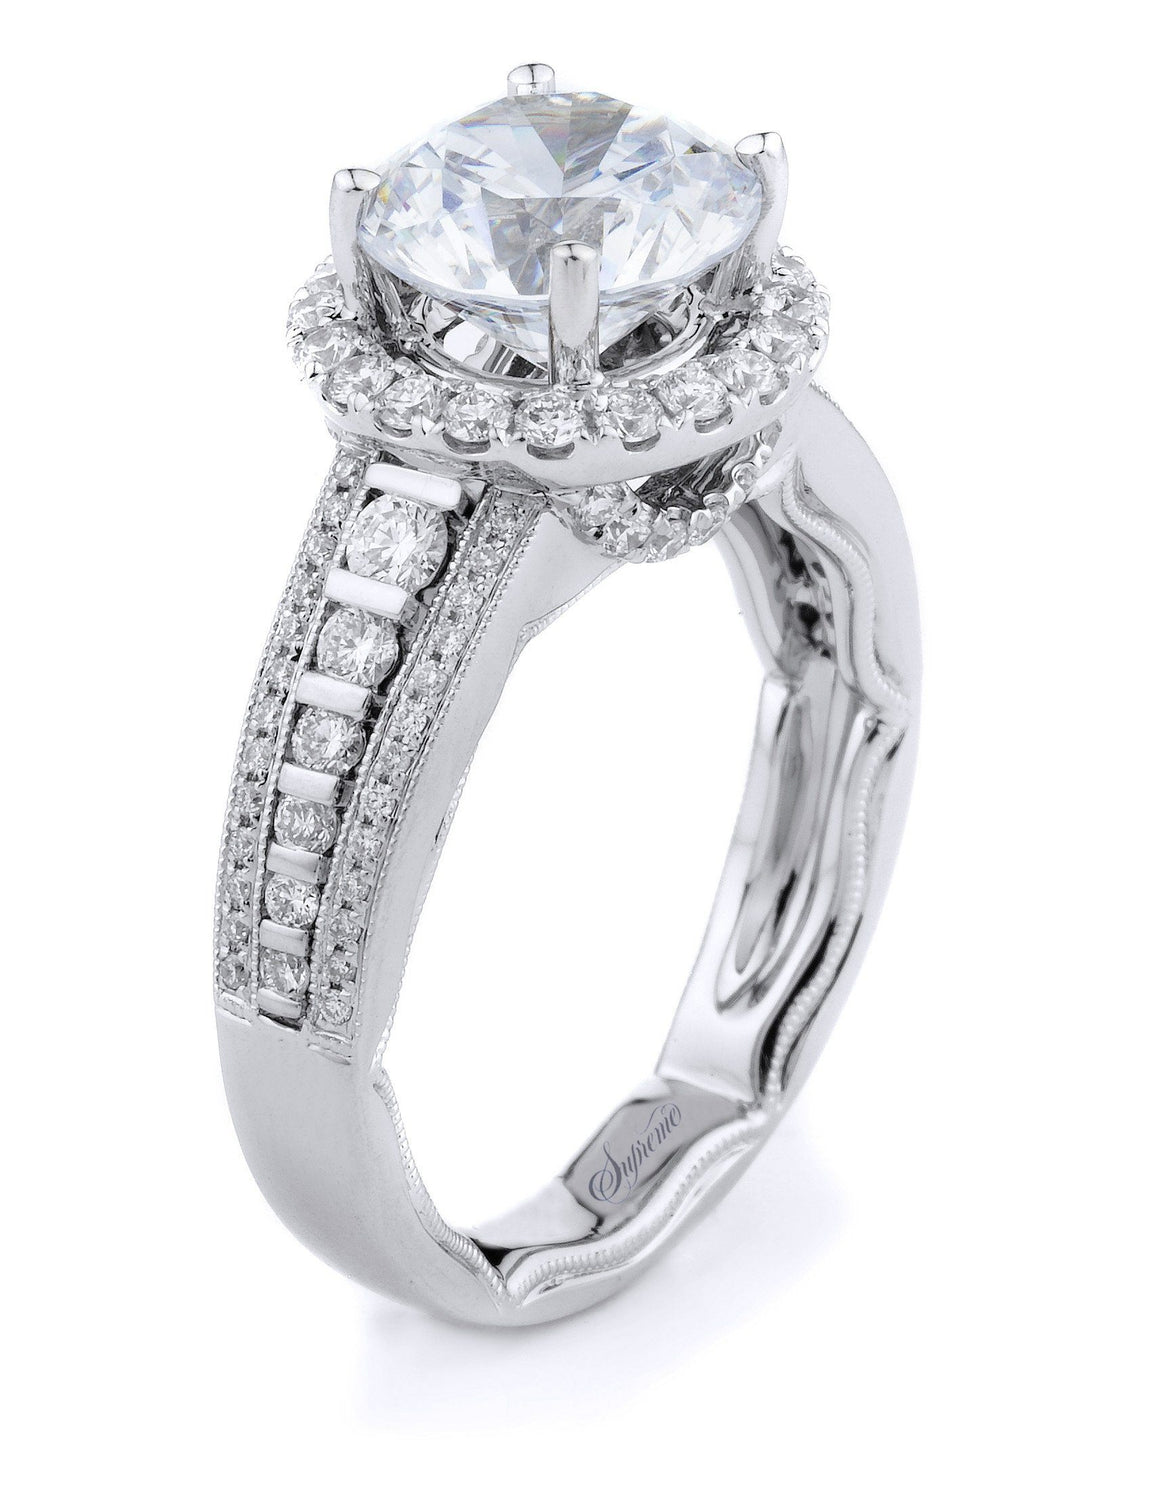 Supreme - SJU1696RS, Engagement Ring, Supreme Jewelry - Birmingham Jewelry